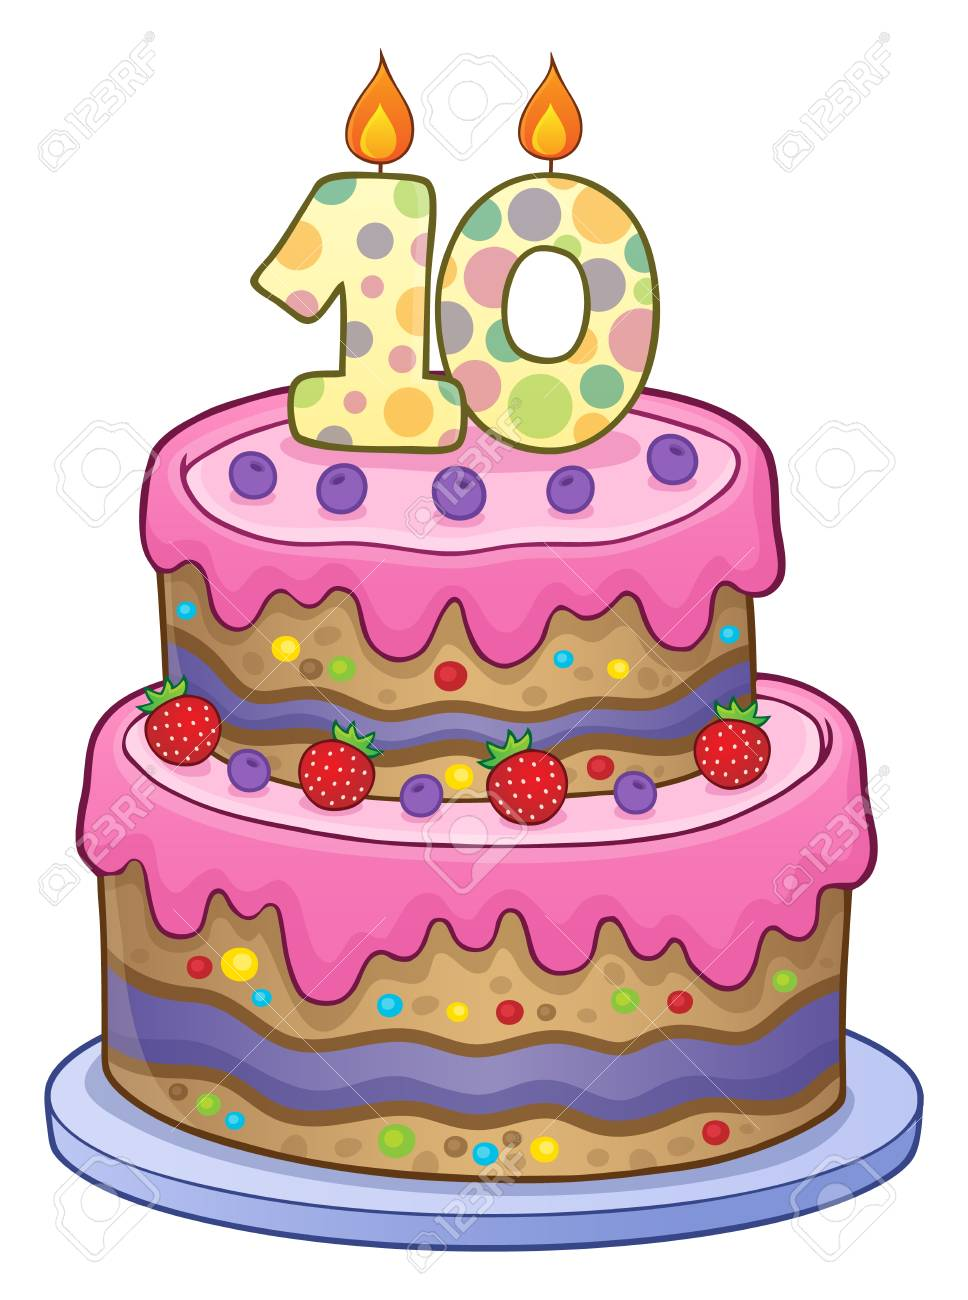 Two Layered Birthday Cake For 10 Years Old Vector Illustration Stock